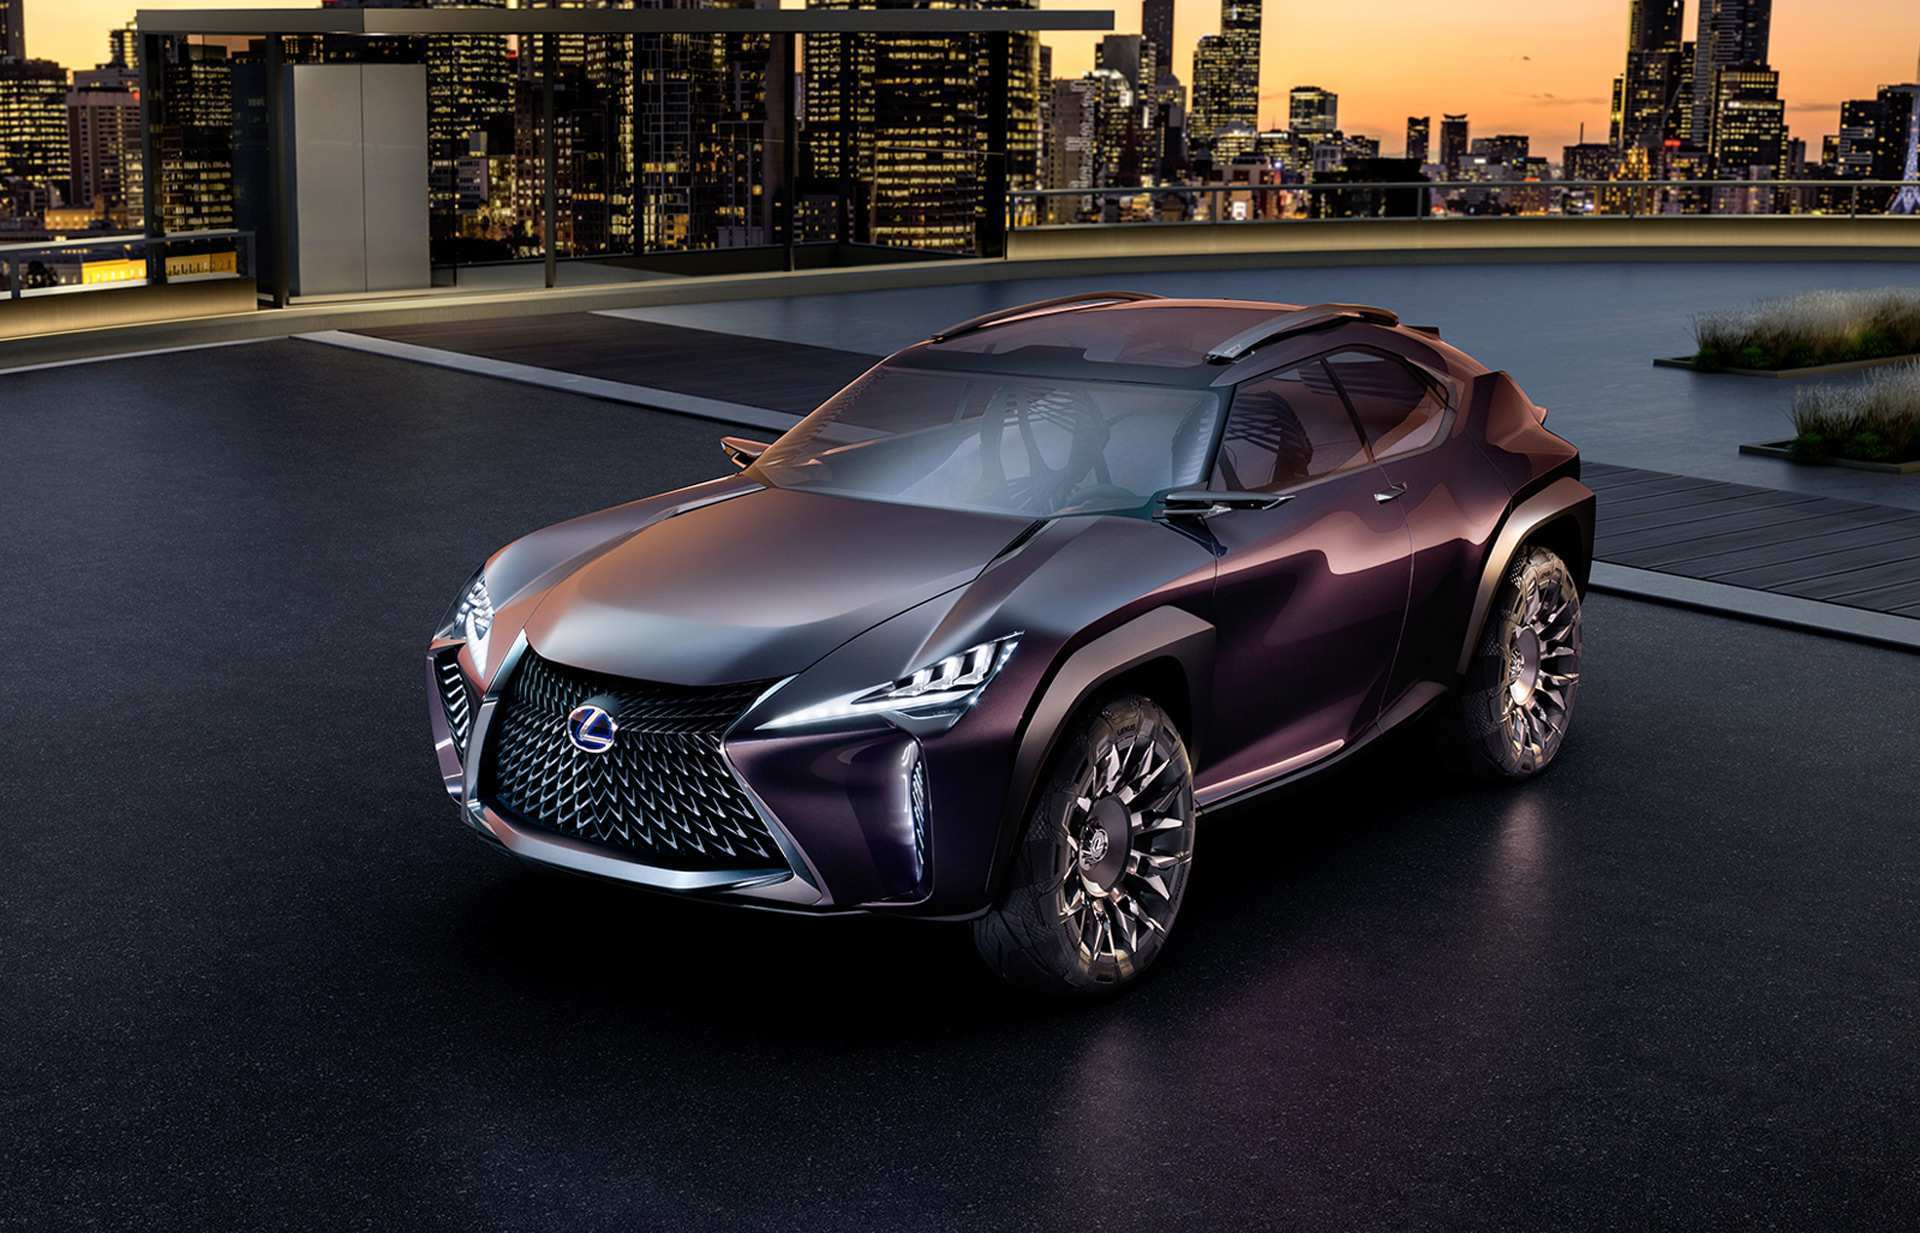 32 New Lexus 2019 Us Redesign And Concept Engine for Lexus 2019 Us Redesign And Concept